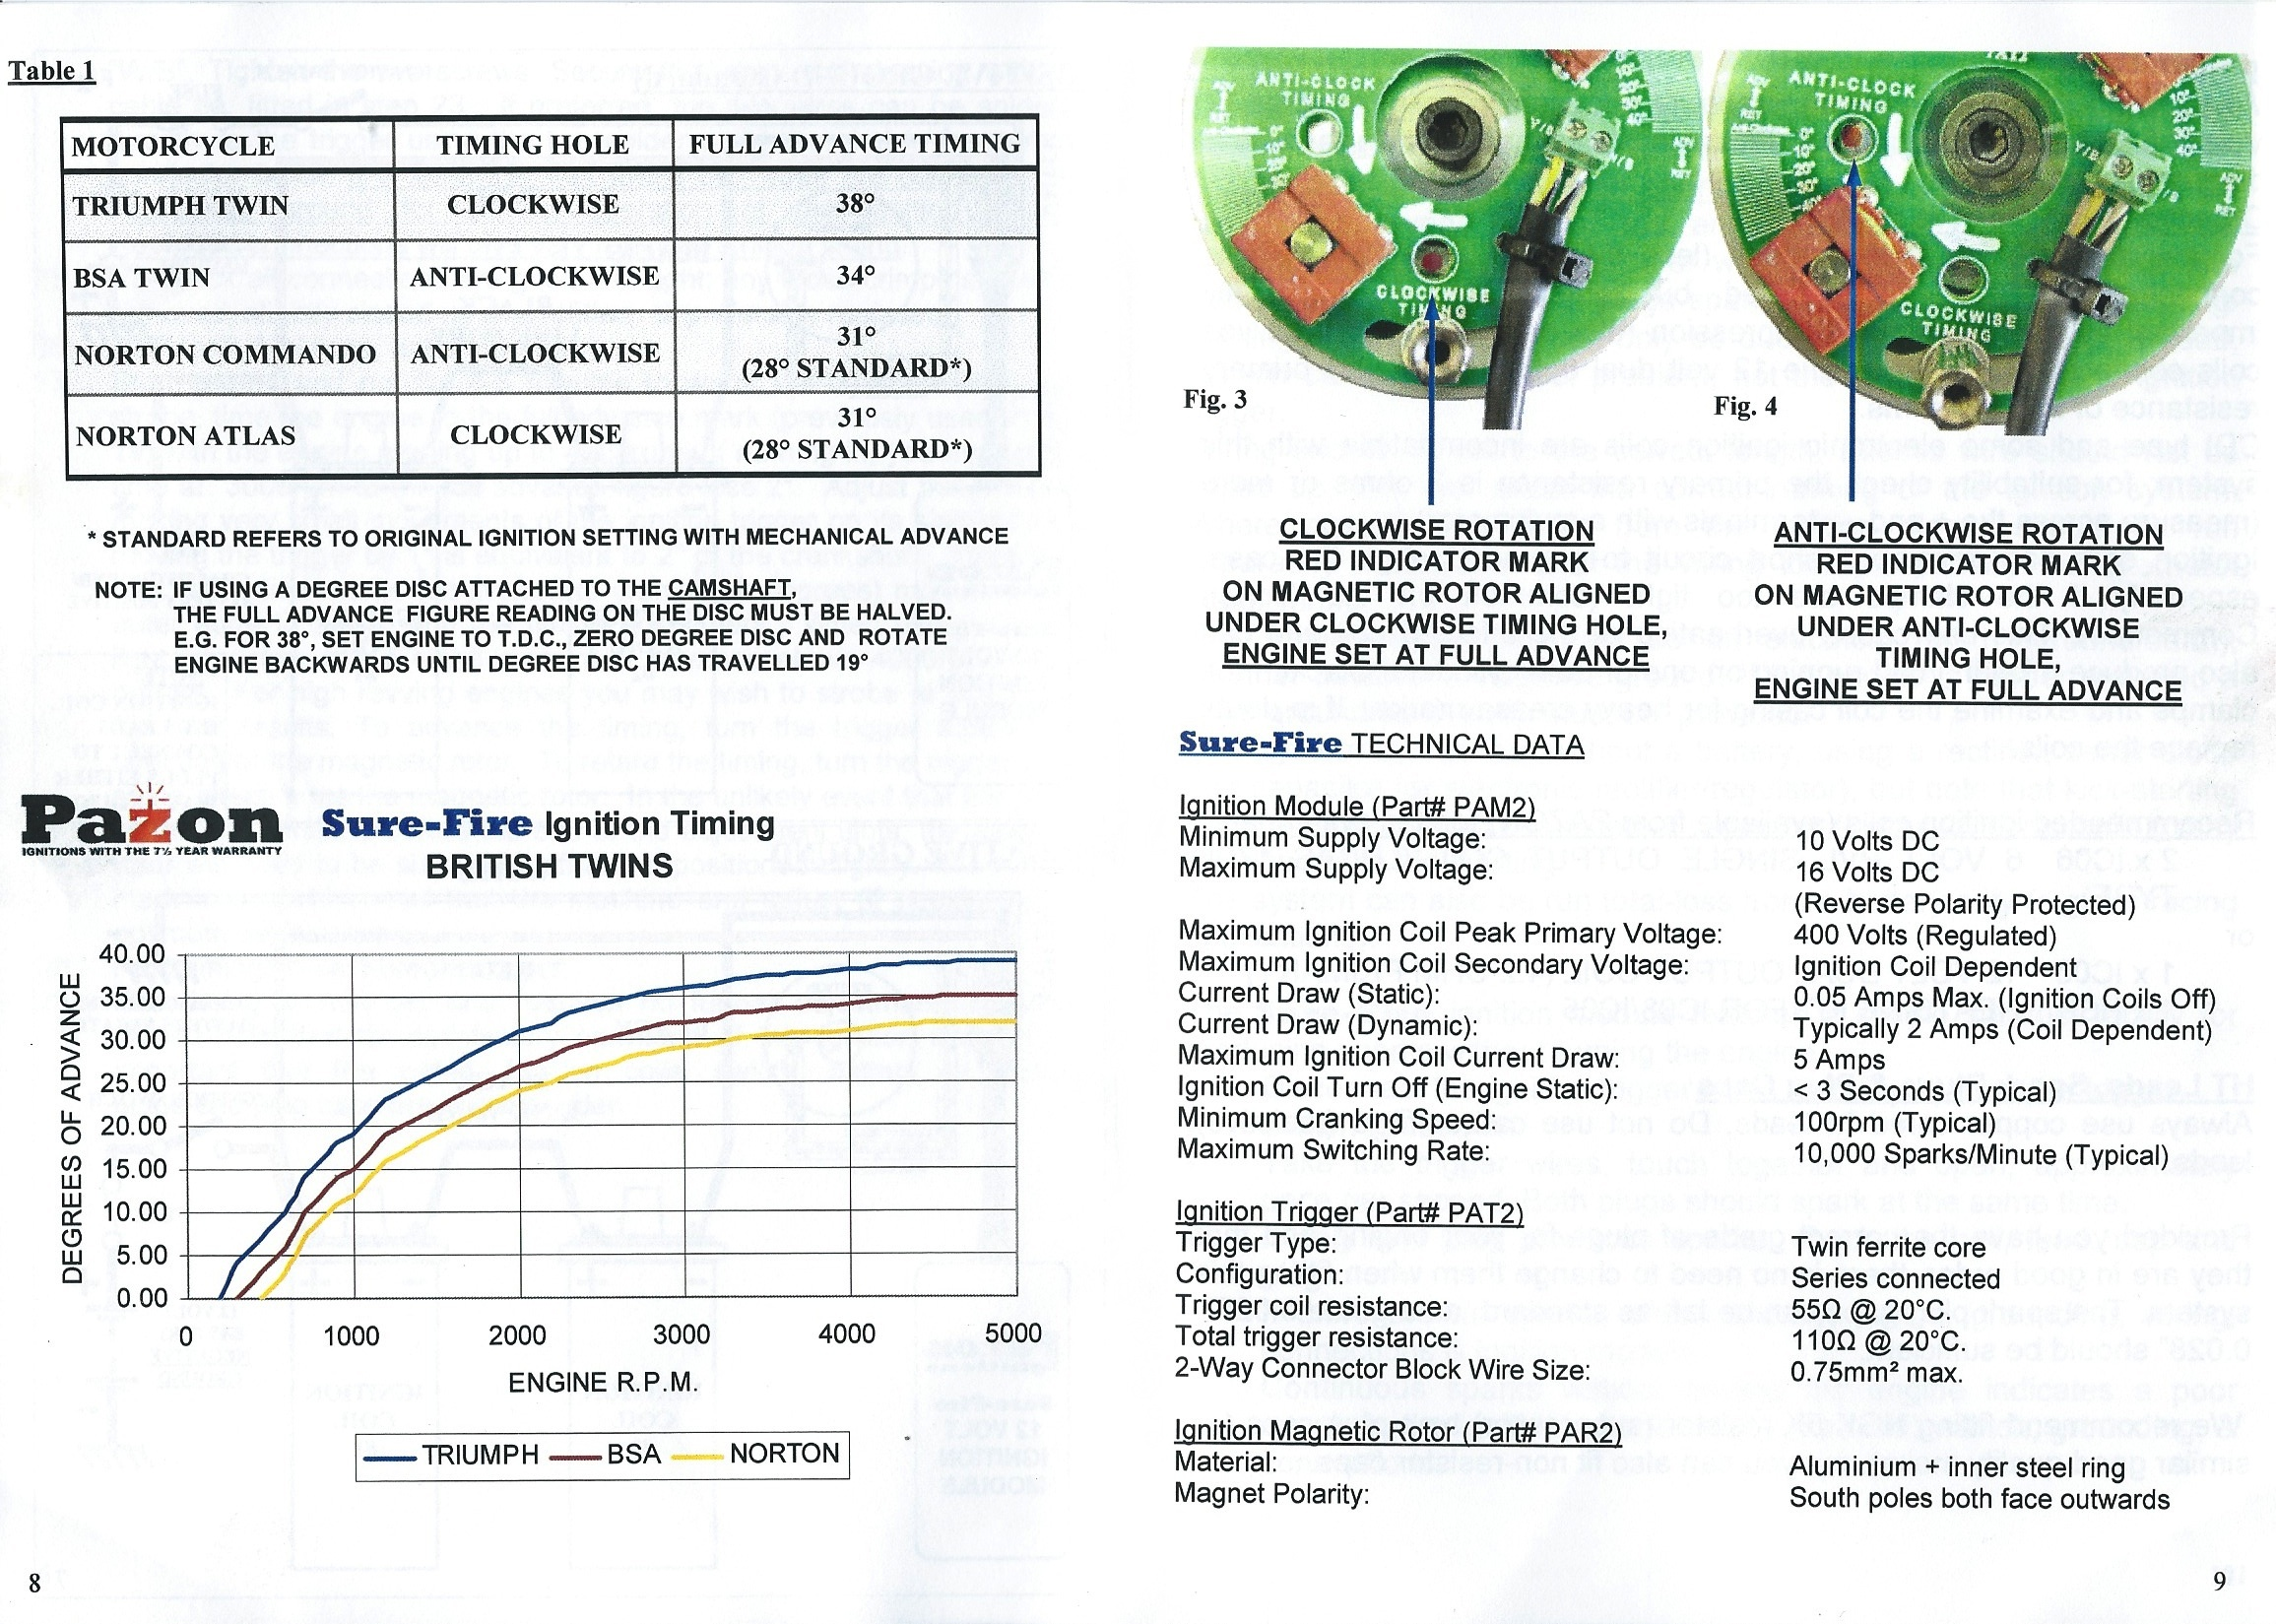 pazon wiring diagram wiring diagram car wiring diagrams pazon wiring diagram 9 janmeijvogel nl \\u2022pazon wiring diagram amhfarms co uk u2022 rh amhfarms